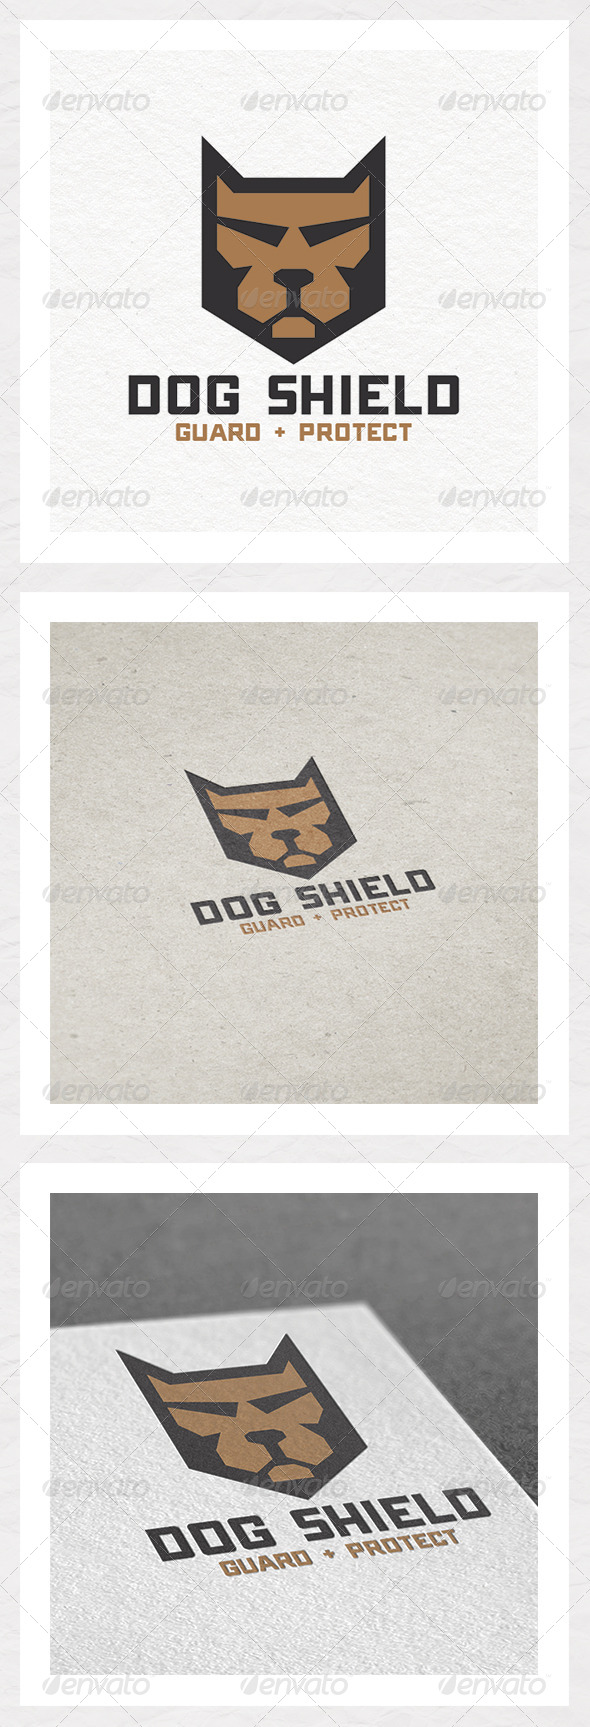 Dog Shield Logo Design